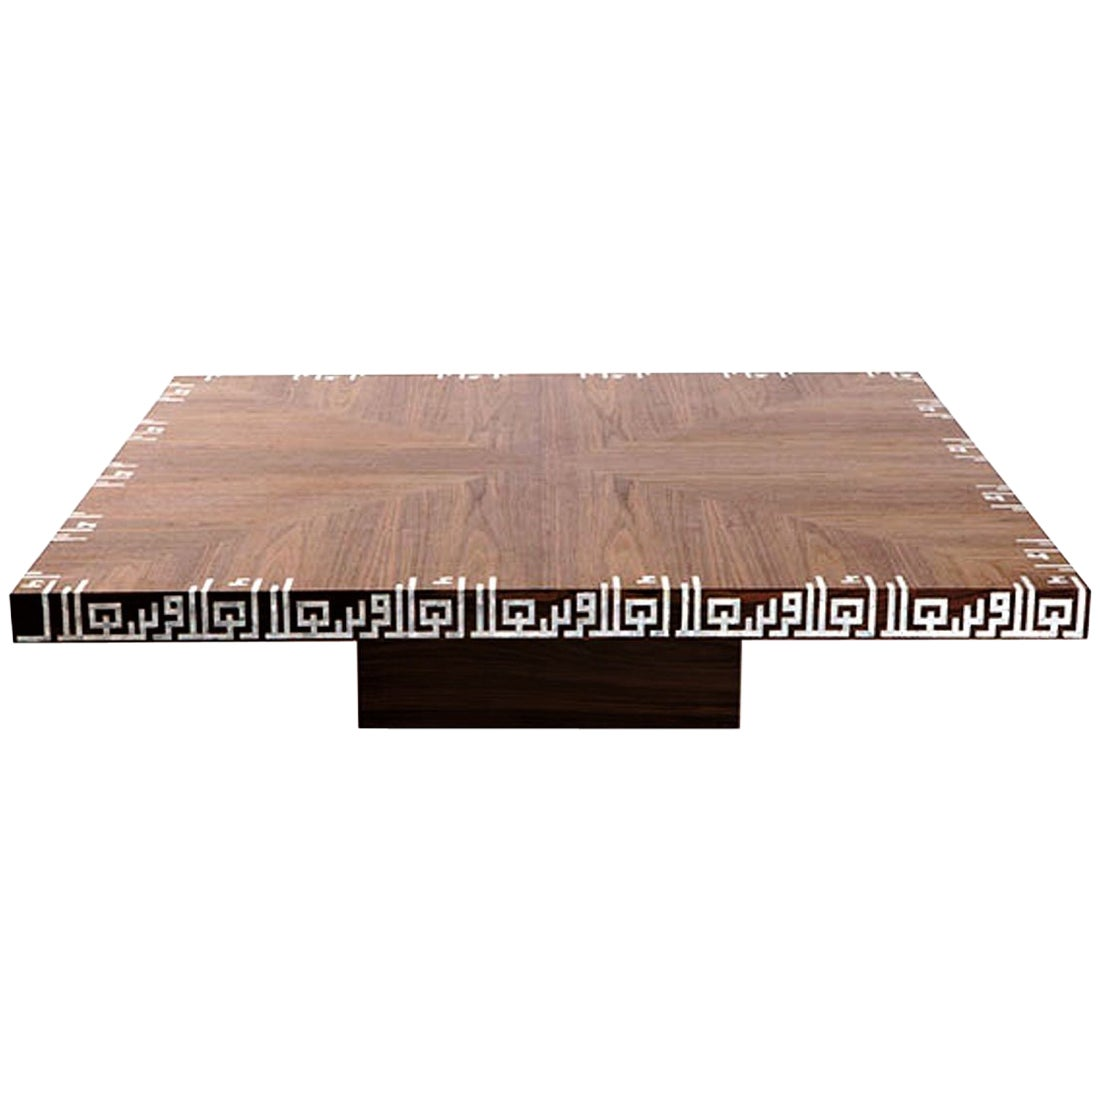 Calligraphy Low Coffee Table, Walnut Coffee Table with Mother-of-Pearl Inlay